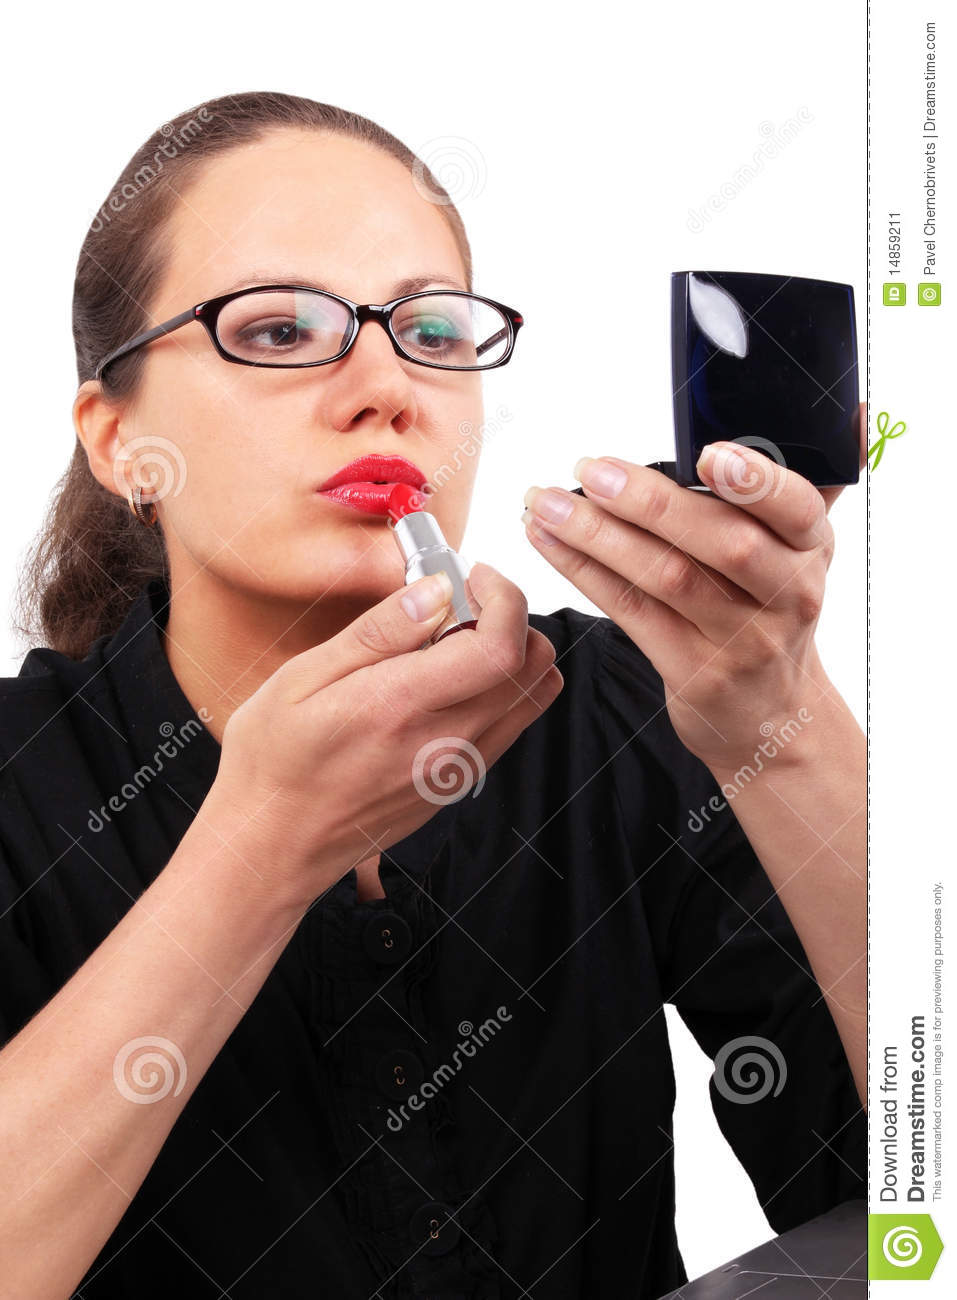 Businesswoman making make-up